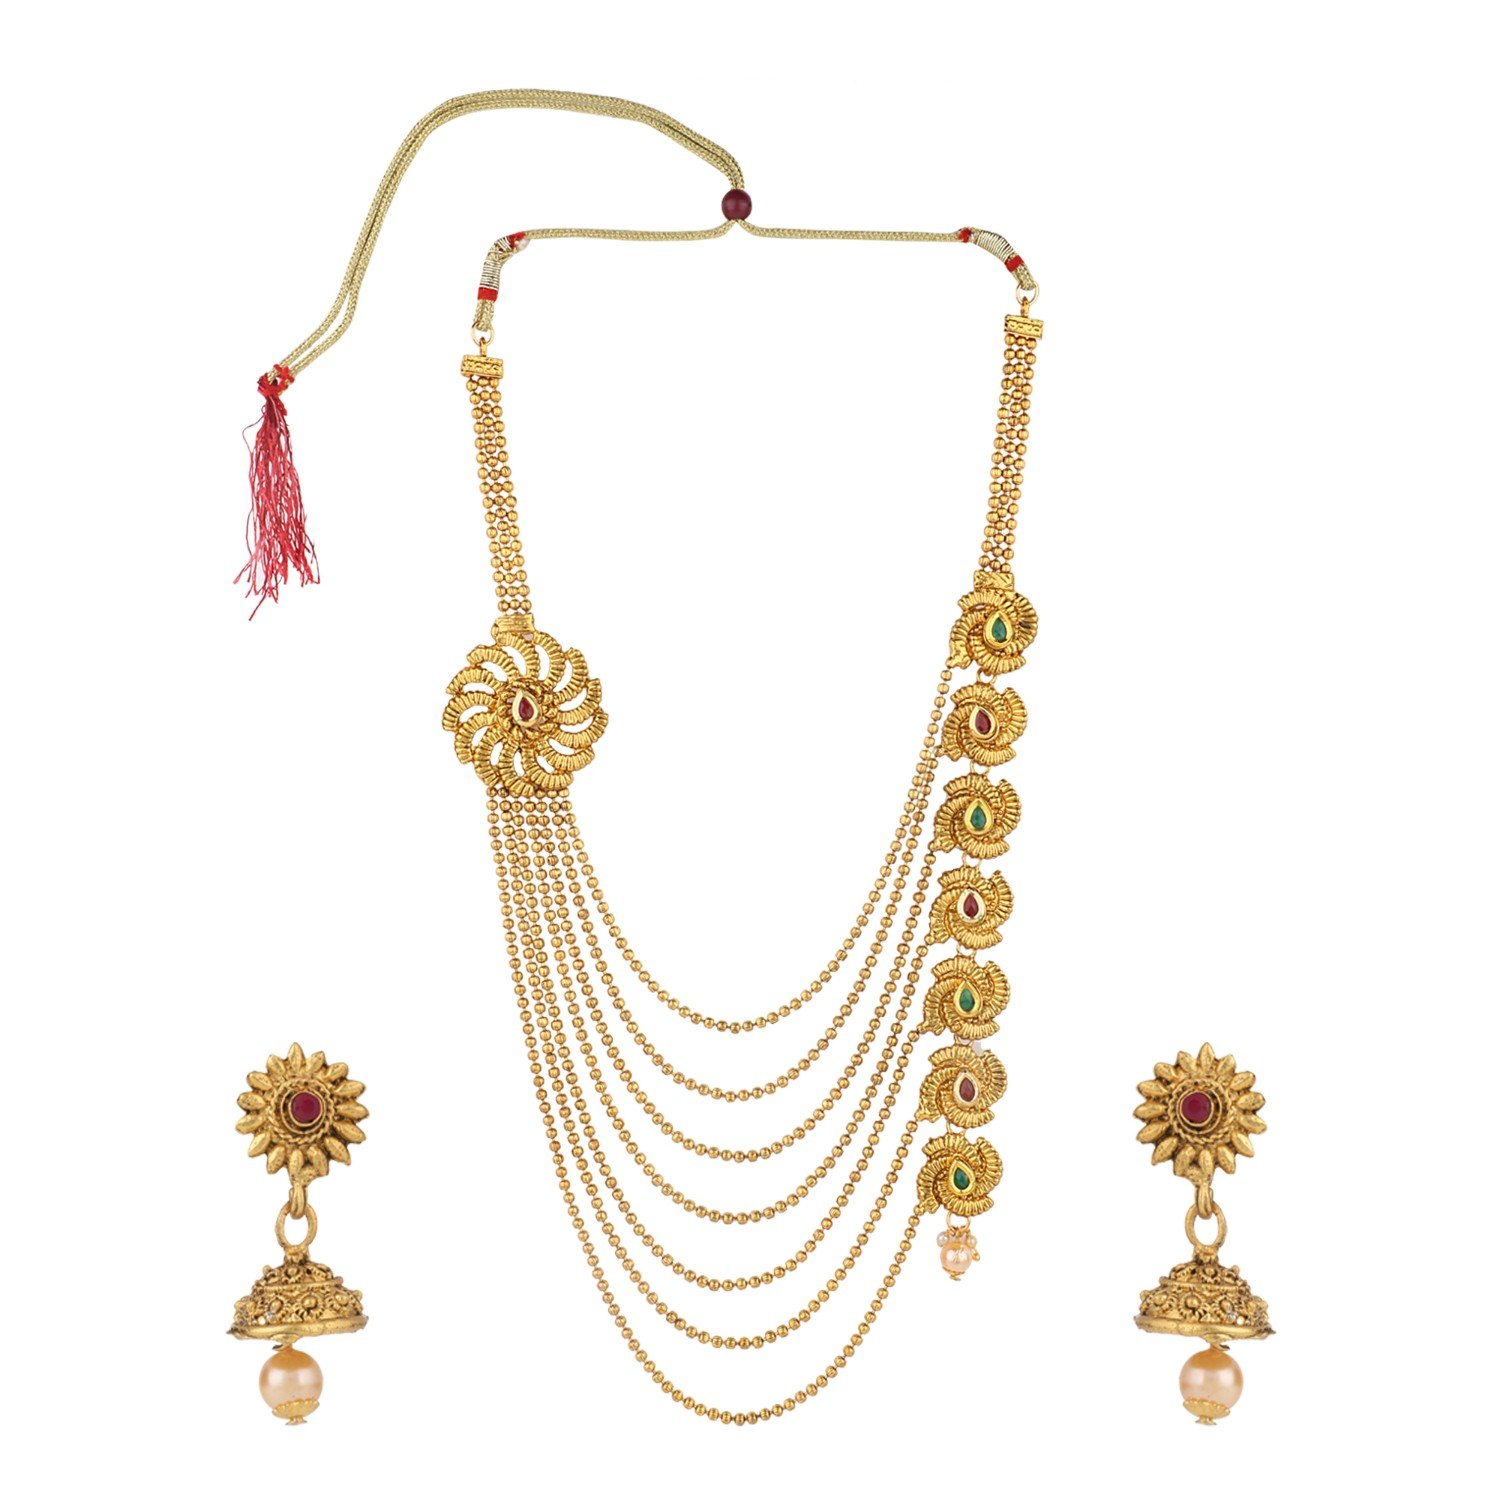 Efulgenz Indian Bollywood Traditional Multi Layered 14 K Gold Plated Crystal Kundan Wedding Temple Necklace Earrings Jewelry Set